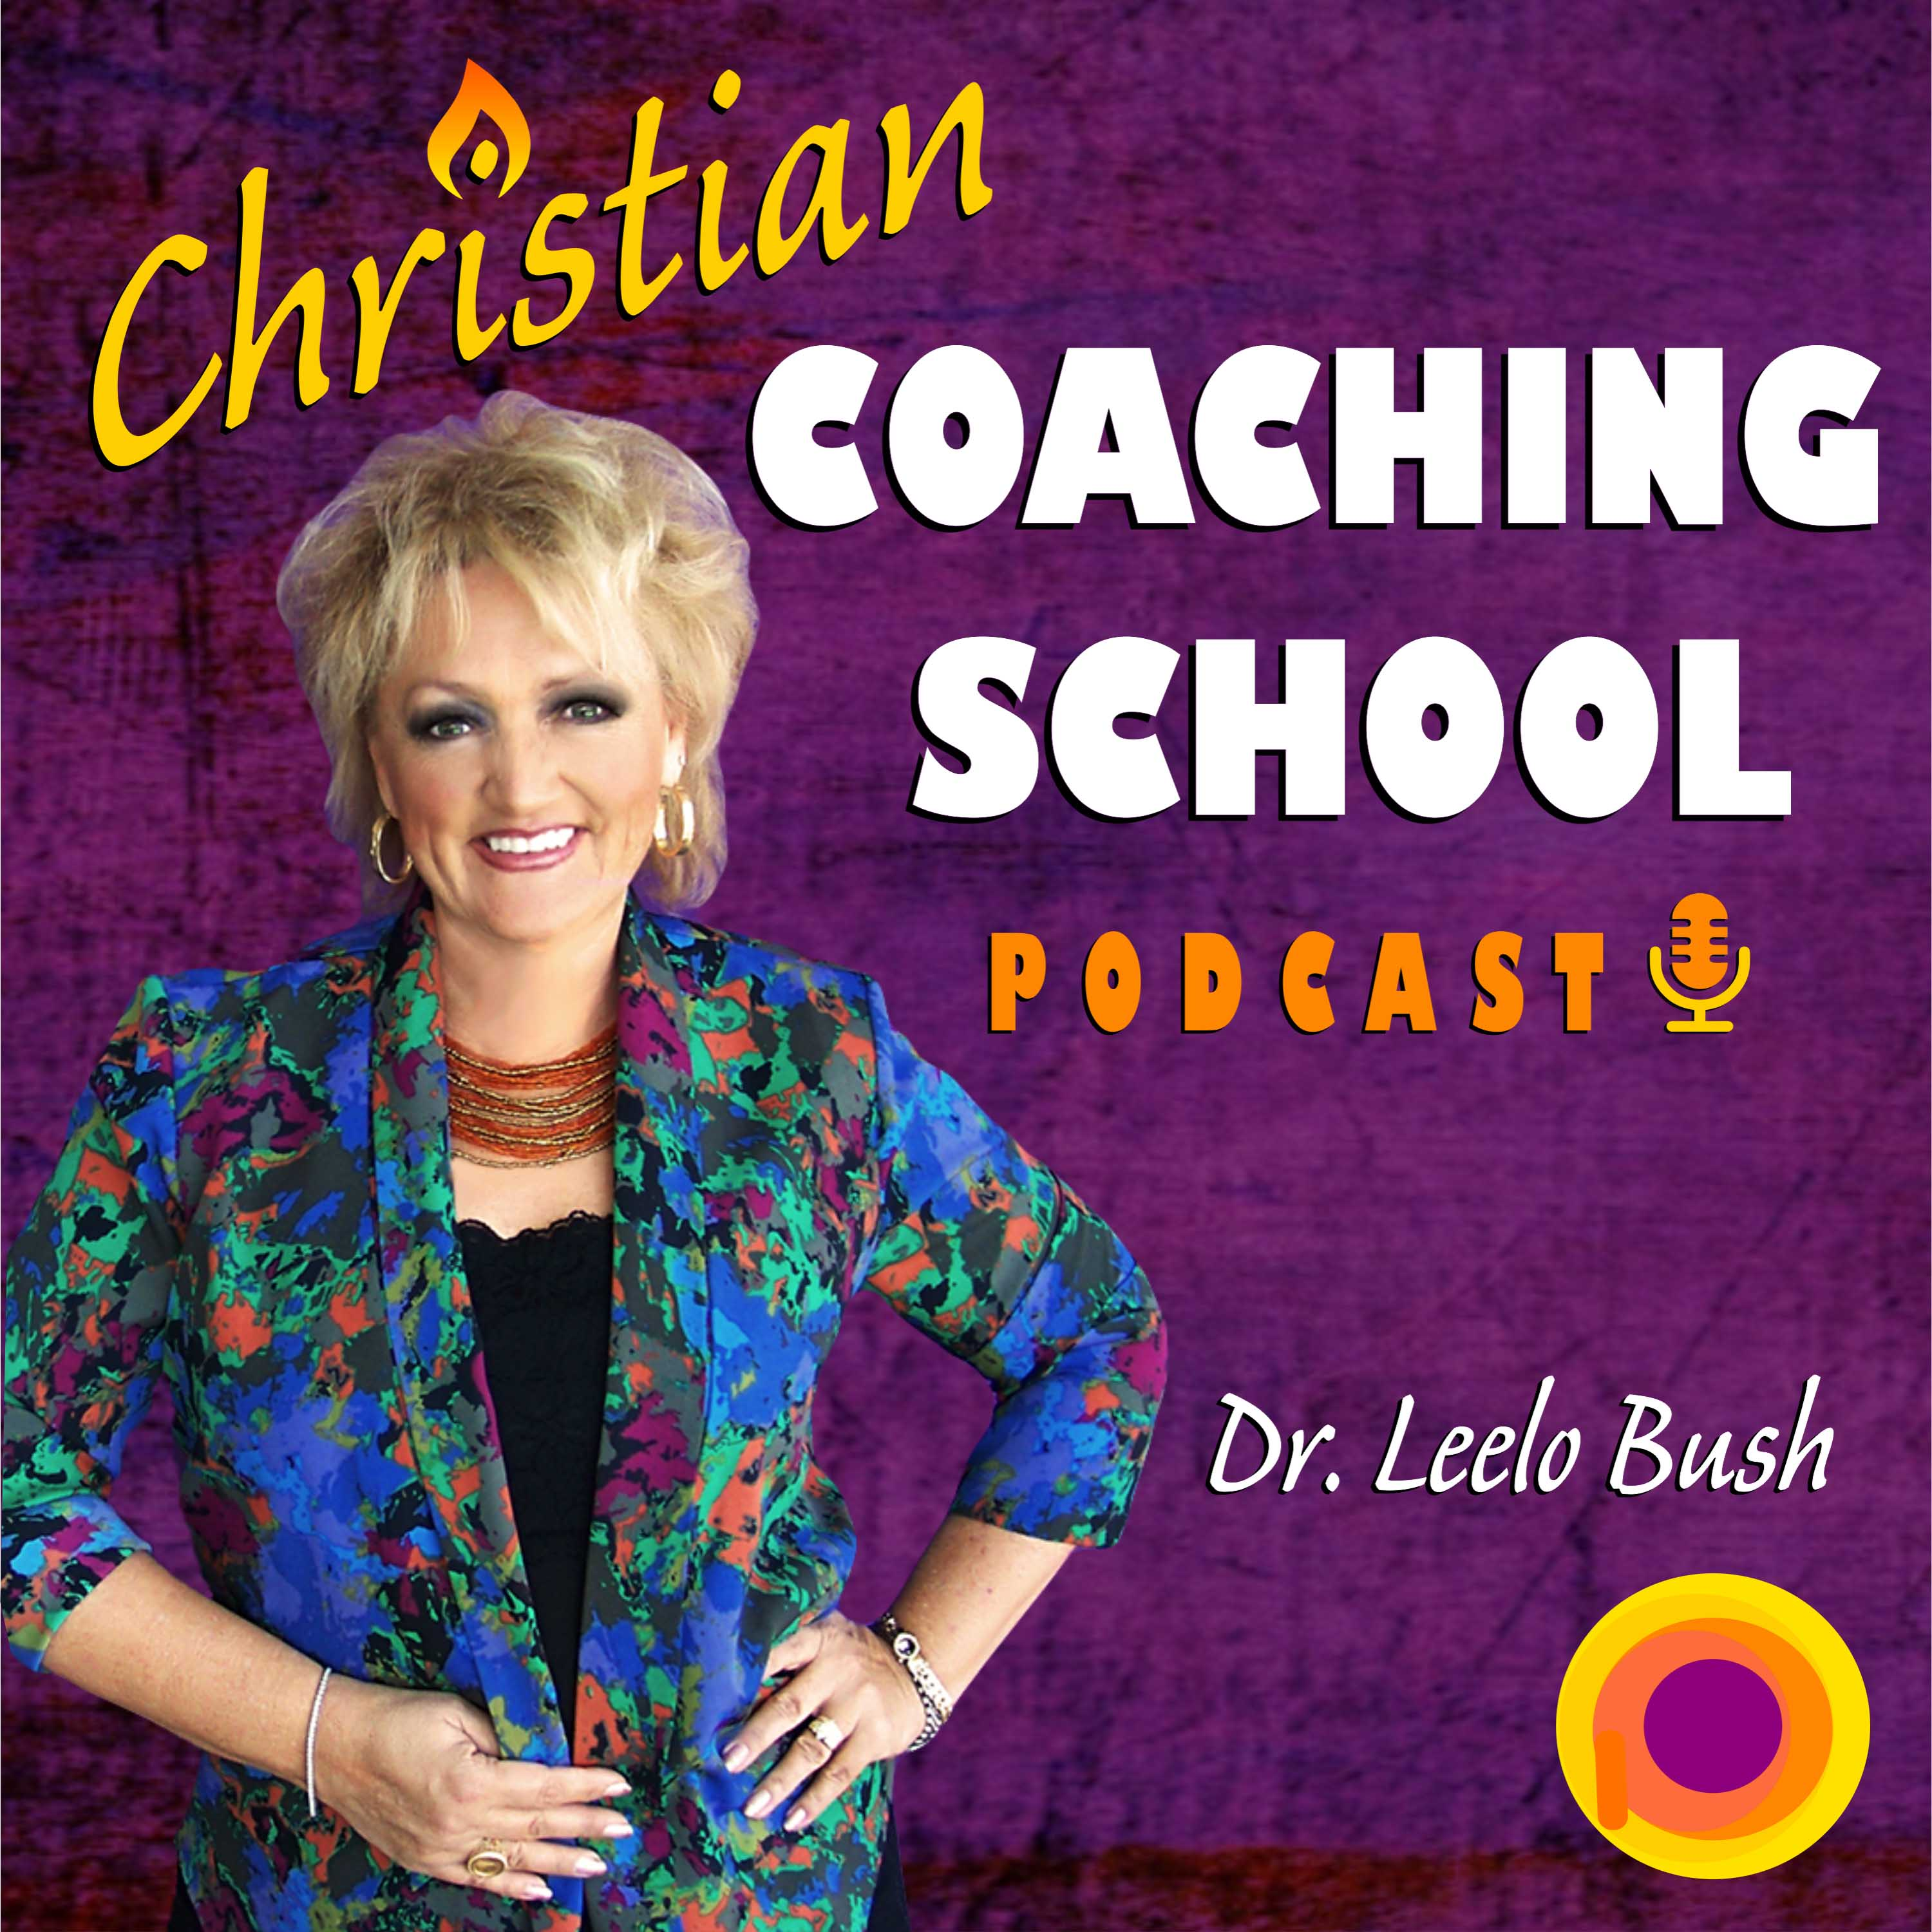 Christian coach training - Christian Coaching School Podcast April 2016